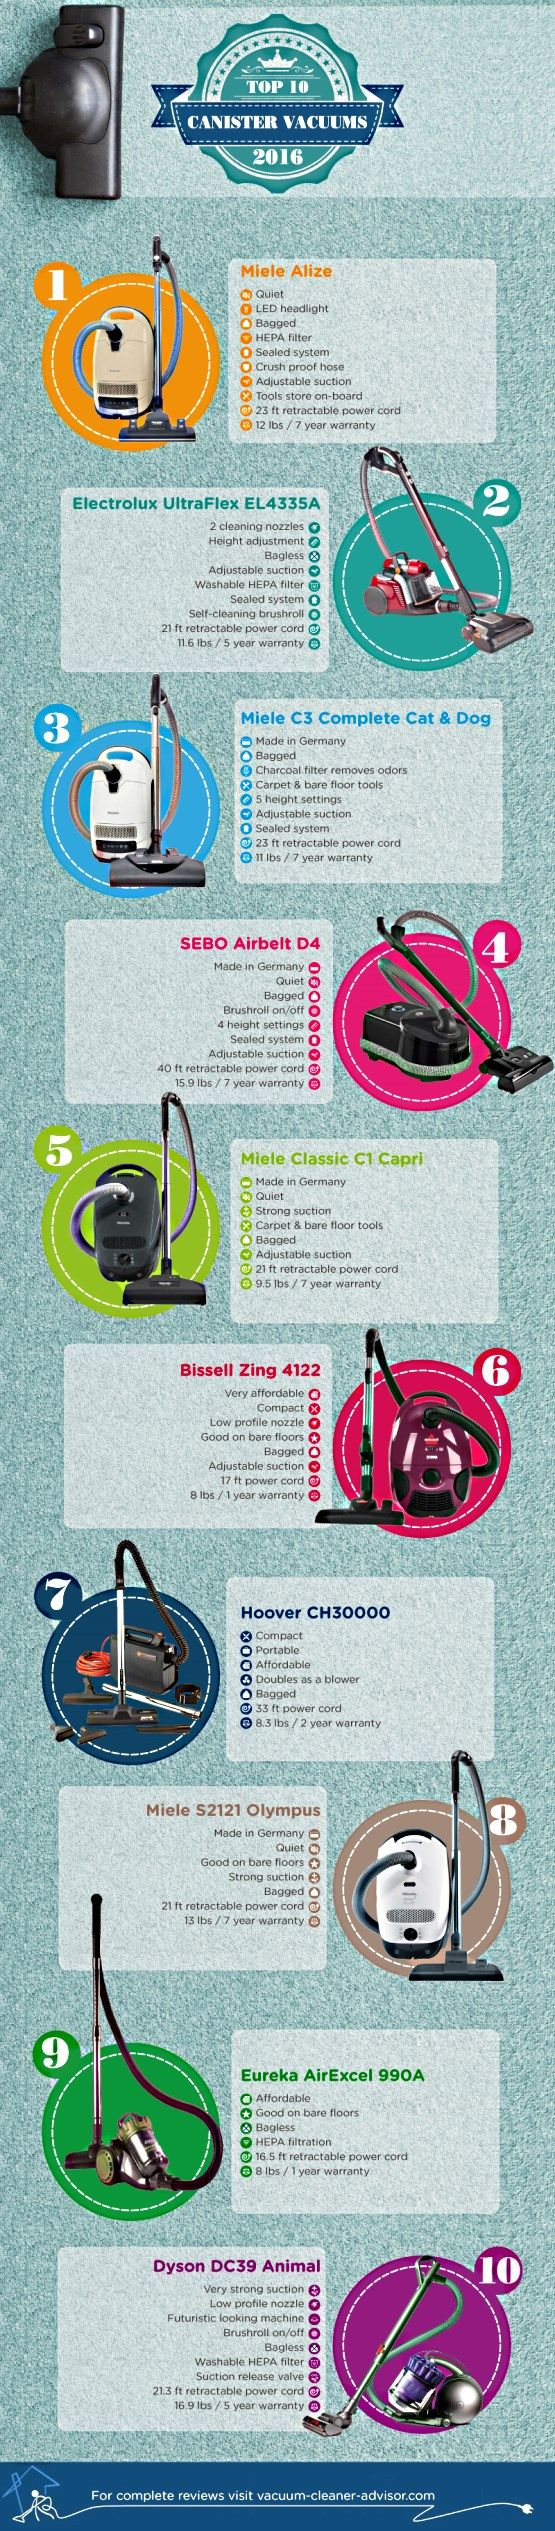 Sebo vacuum cleaners at bed bath and beyond - Find This Pin And More On Vacuum Cleaner Infographics